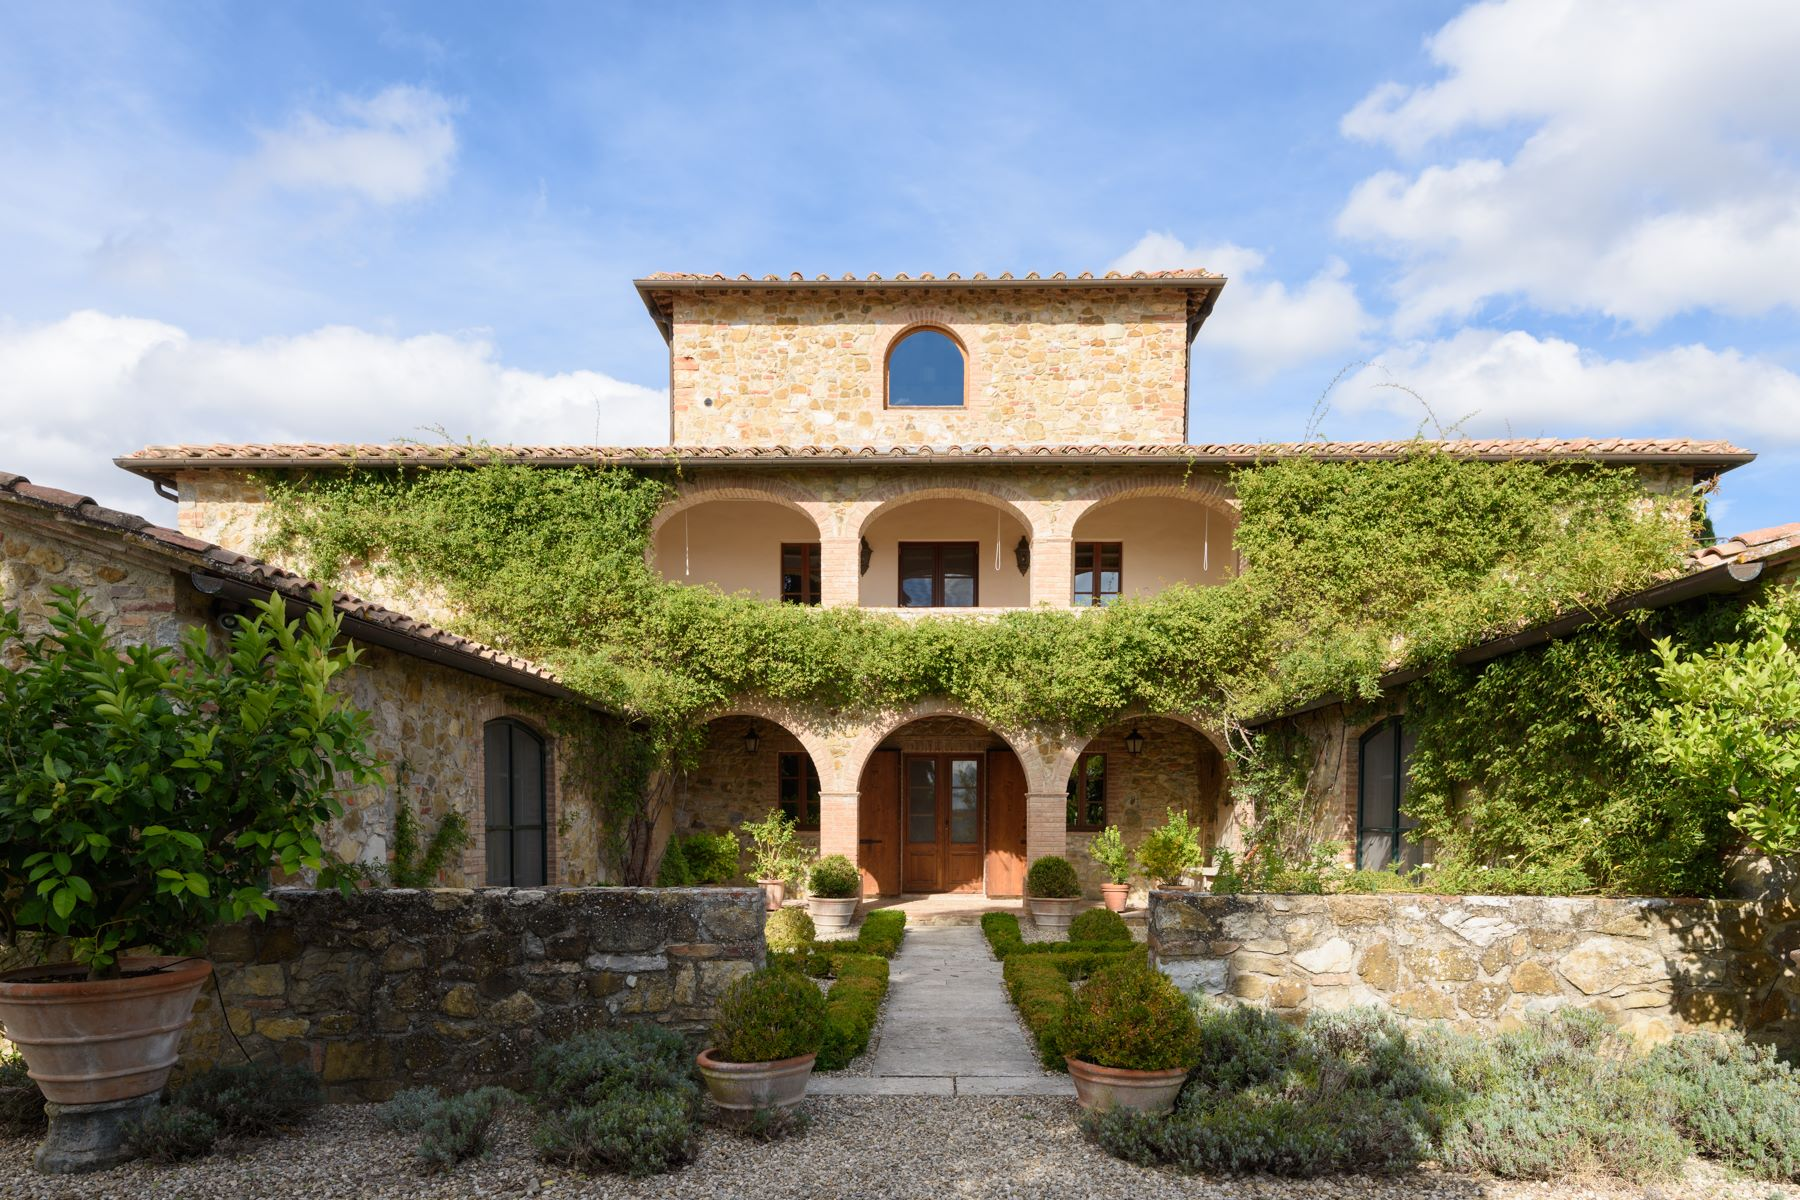 一戸建て のために 売買 アット Luxury Chianti country estate Castelnuovo Berardenga Siena, Siena, 53019 イタリア